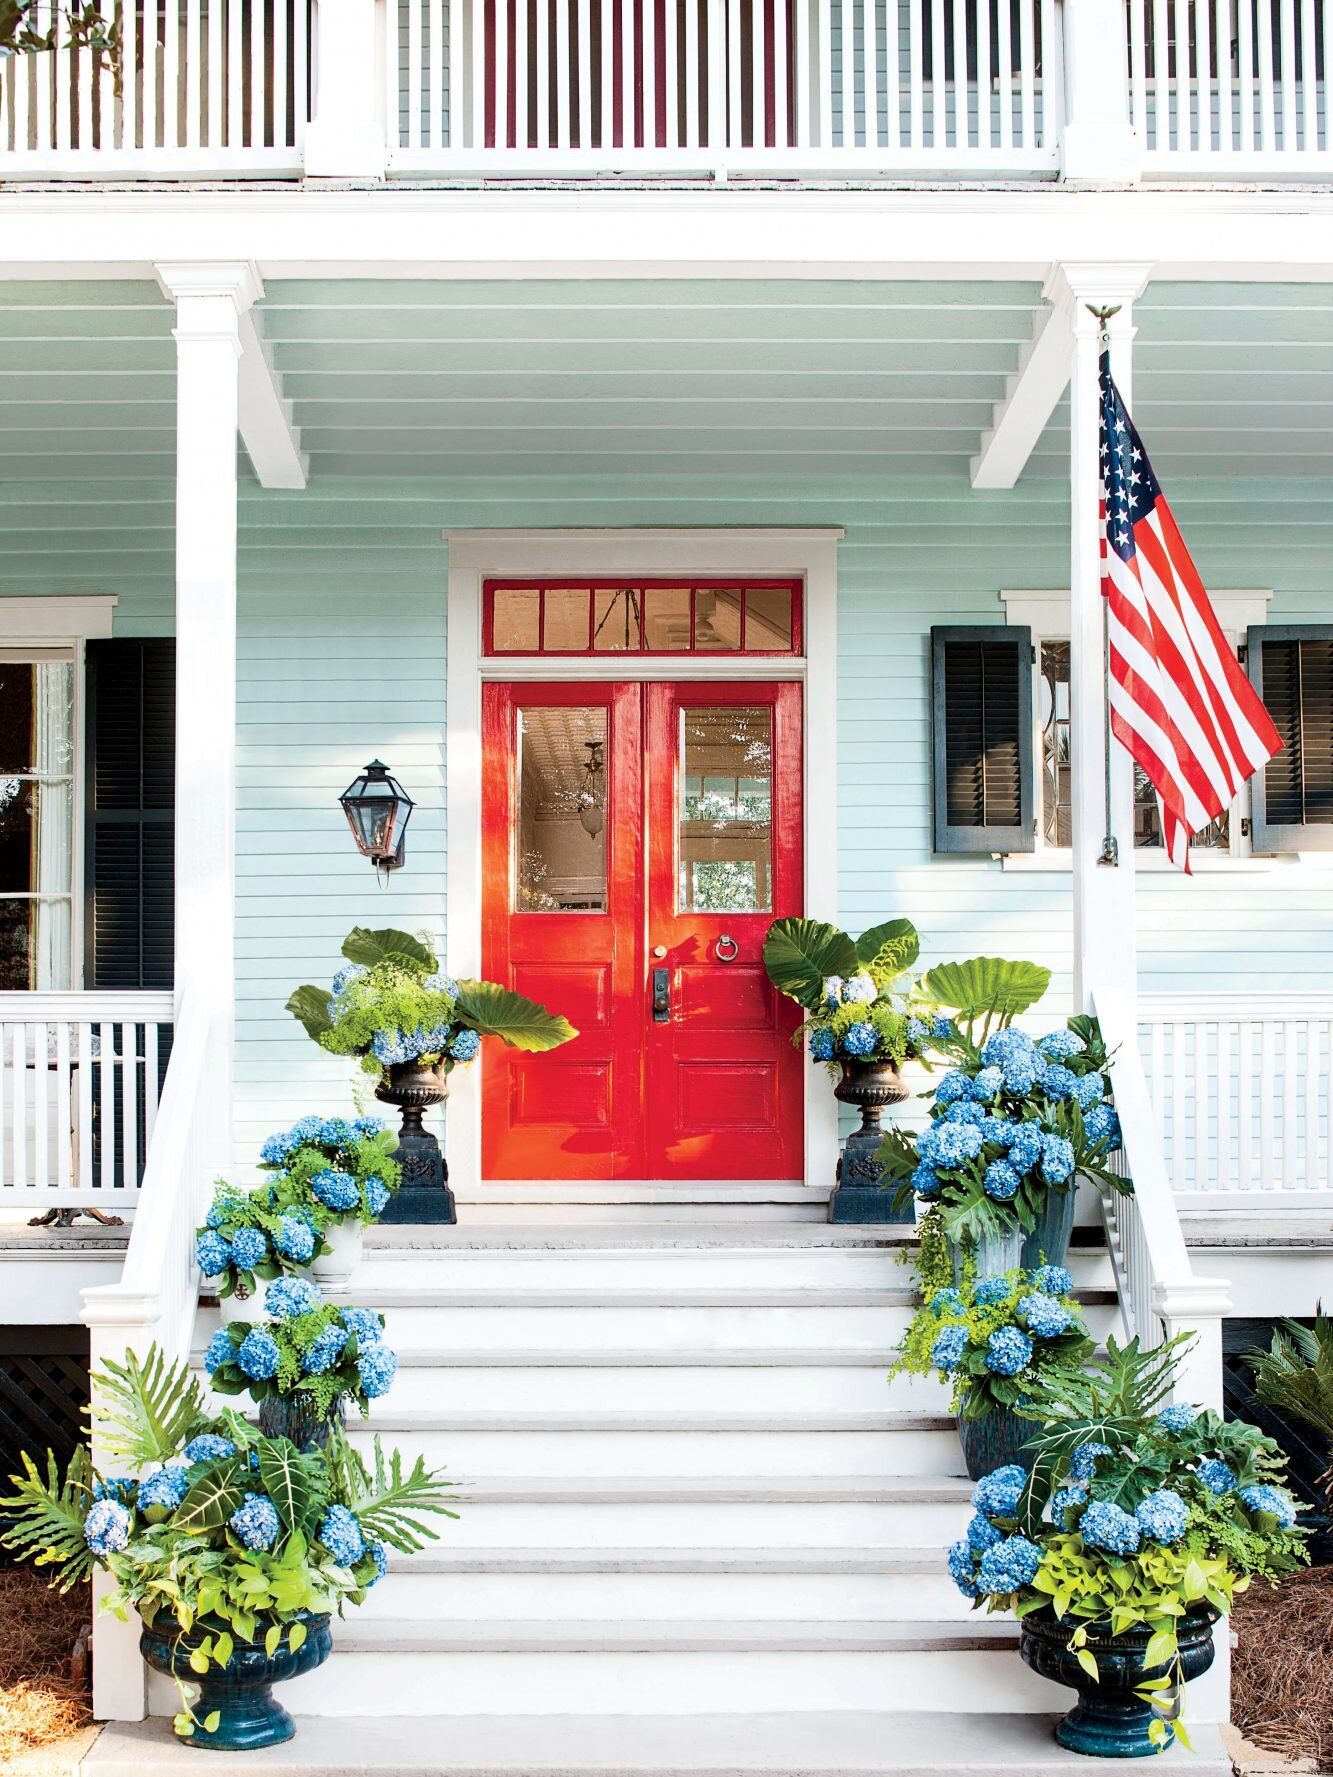 How To Pick The Right Exterior Paint Colors Southern Living,Painted Wood Kitchen Cabinet Colors